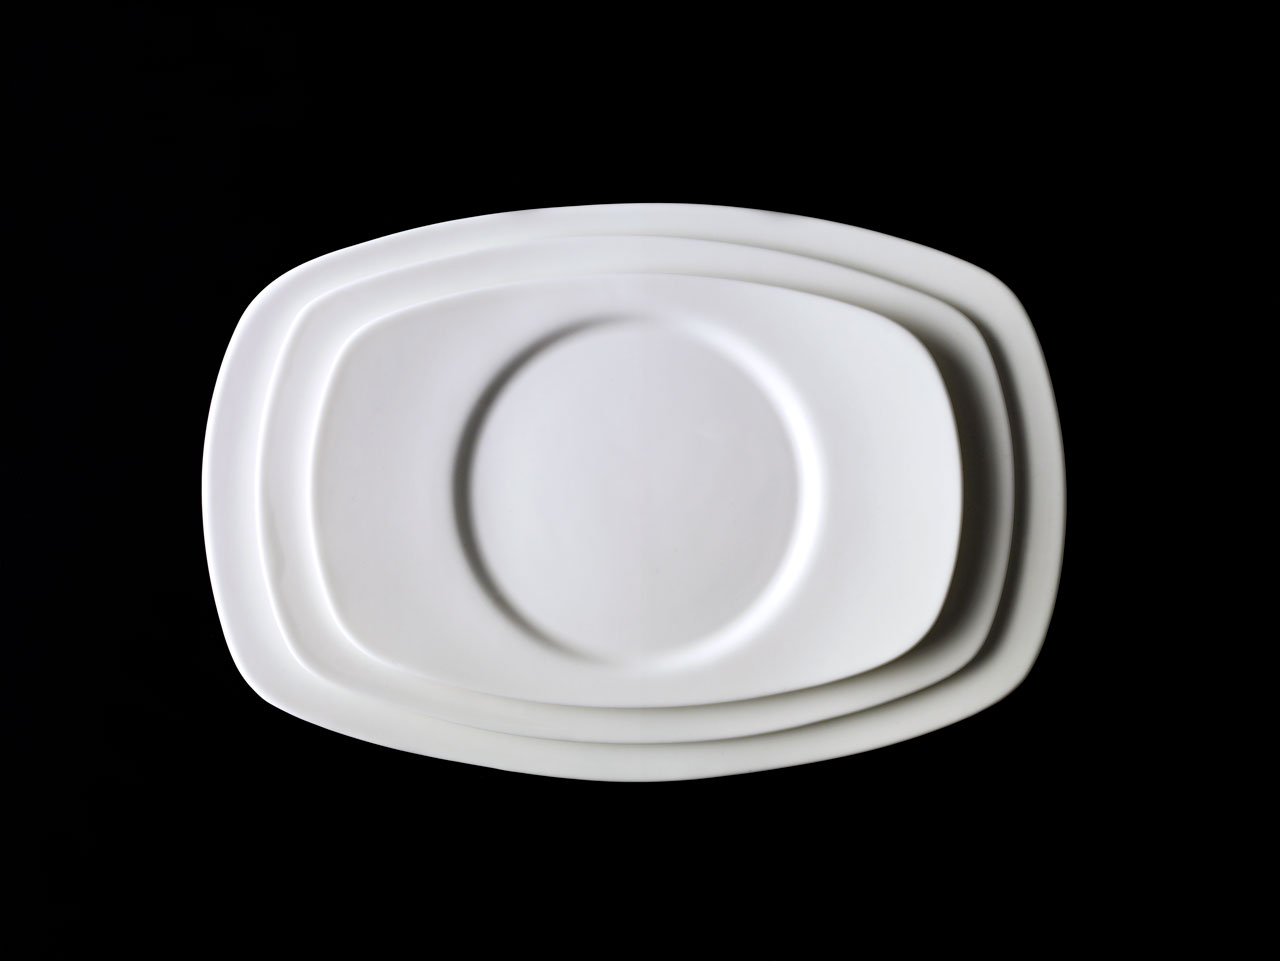 Bent Brandt - TABL white bone china S1 oval saucer and plate on oval platter